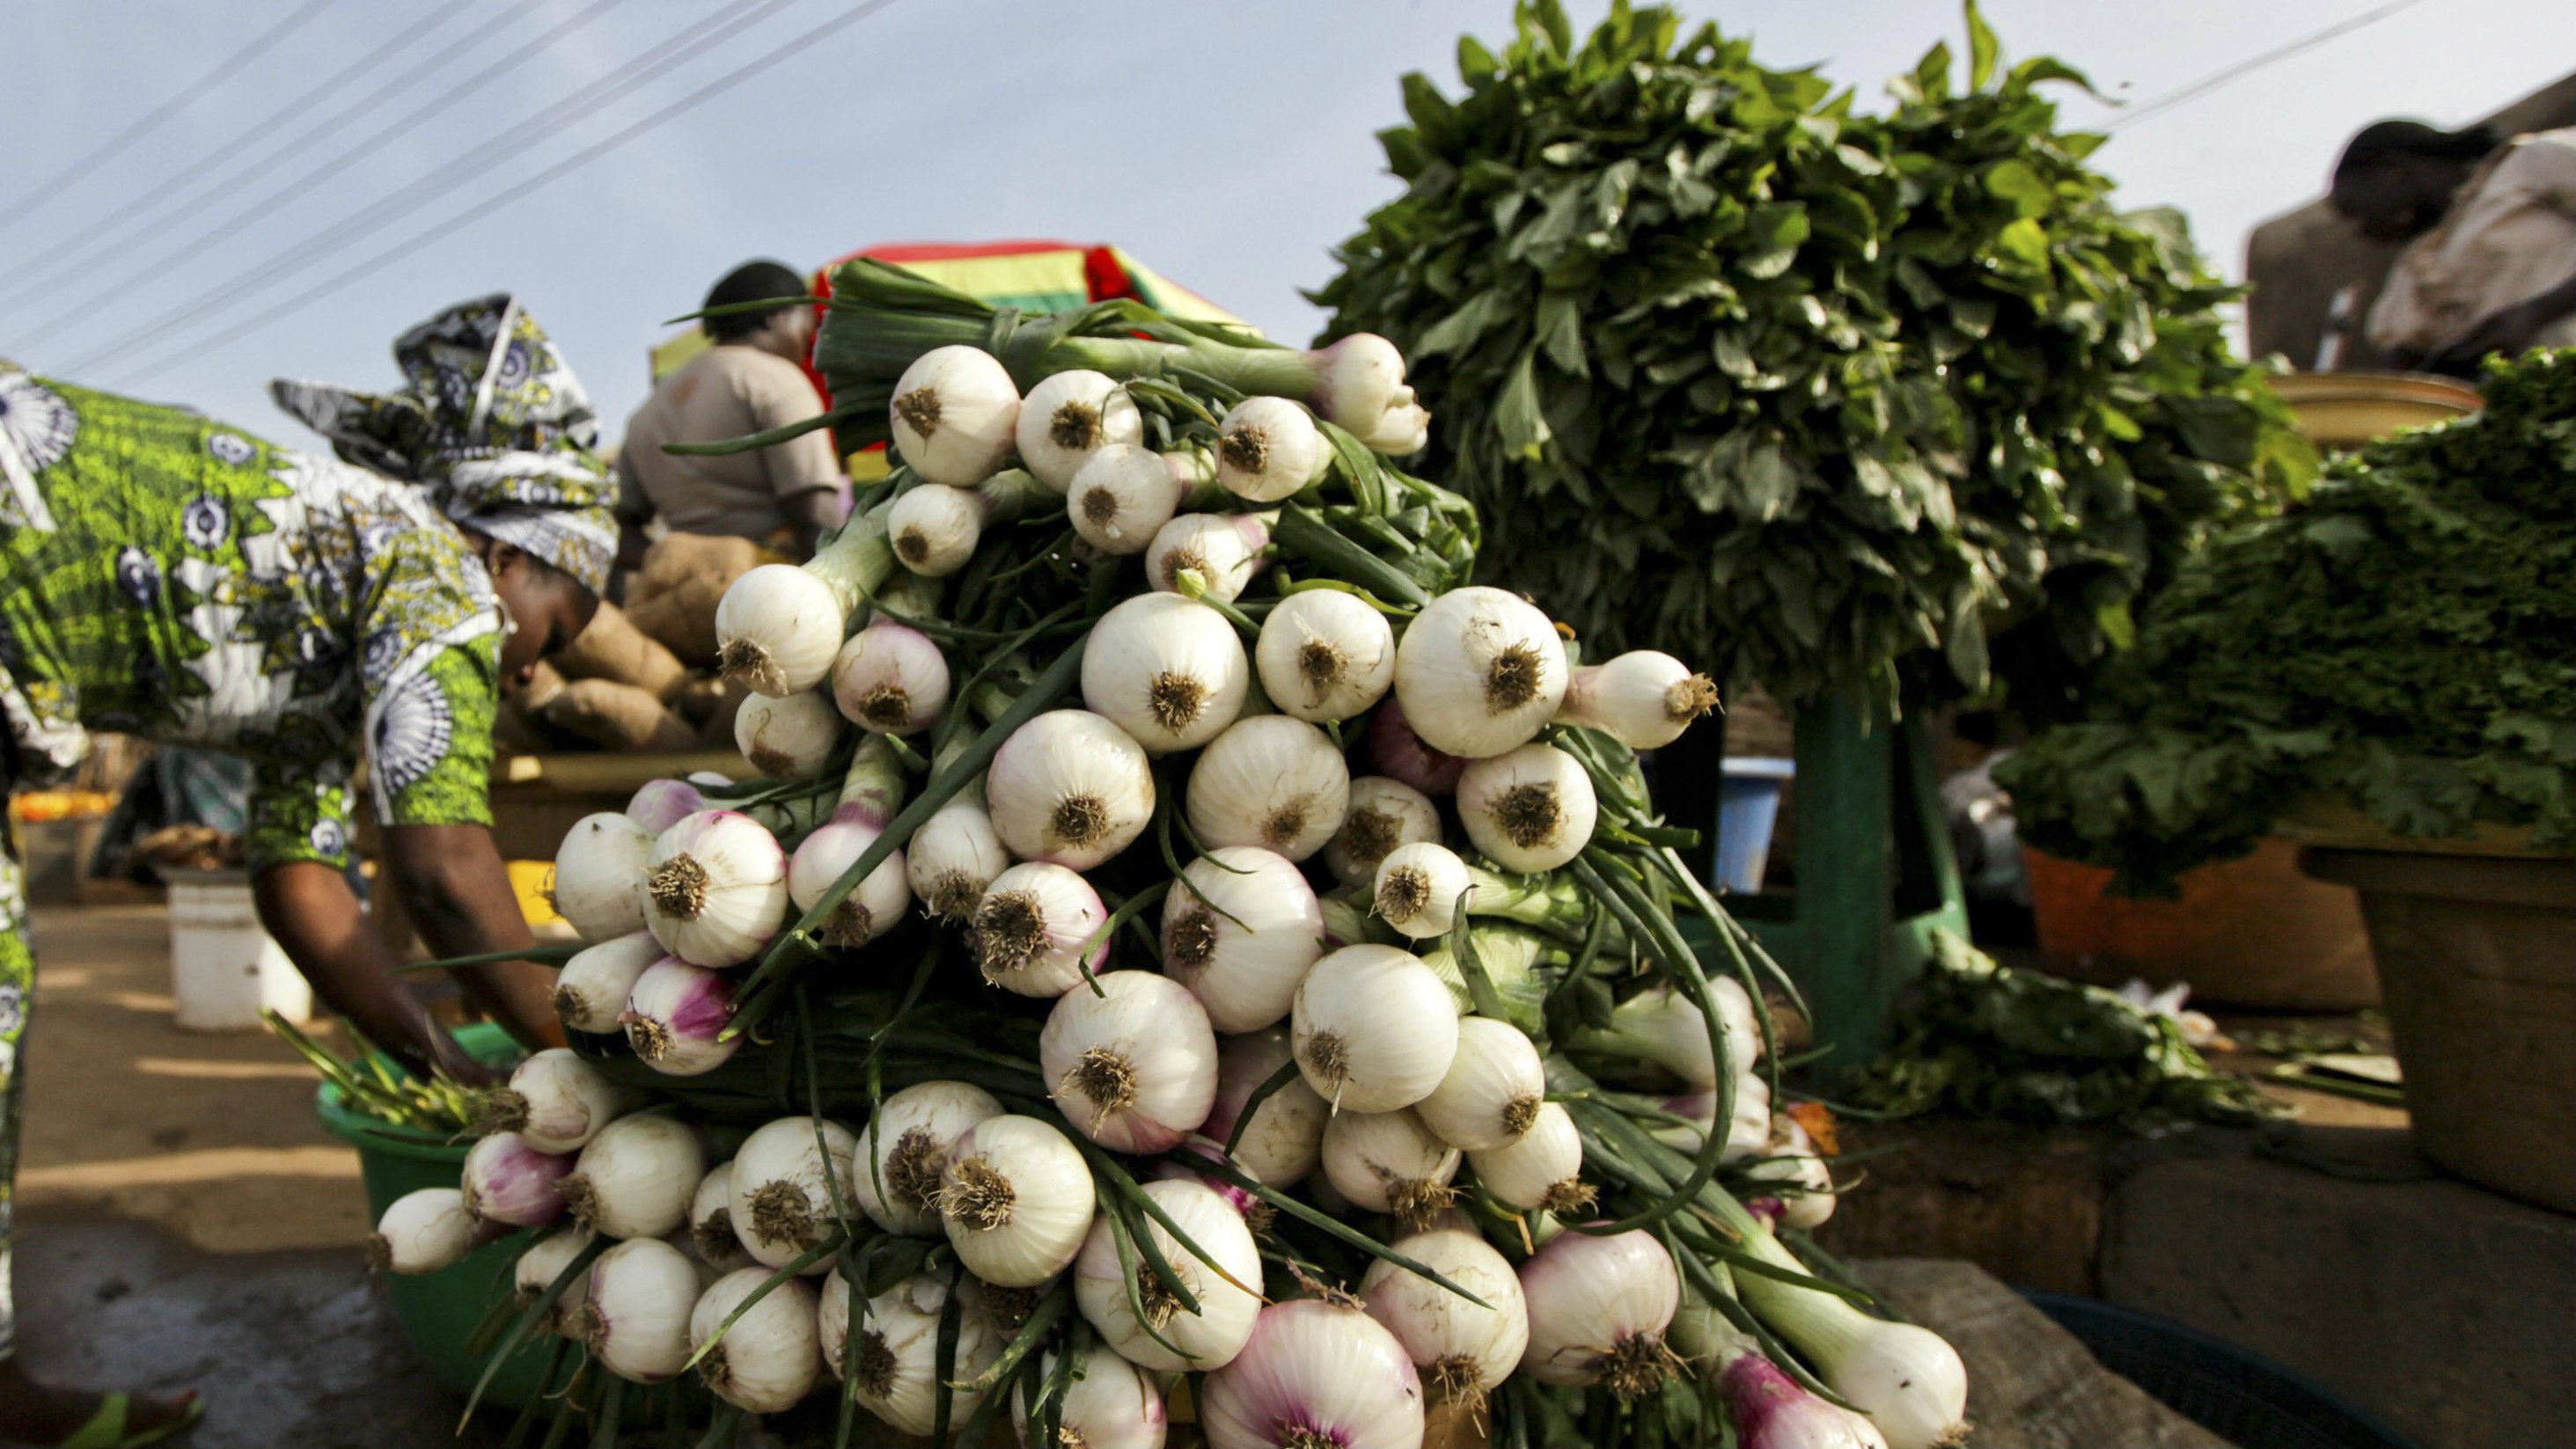 Scallions are displayed at a local food market in Nigeria's central city of Jos February 15, 2011. More than 200 people have been killed in sectarian violence in and around Jos since a series of bombs shattered Christmas Eve celebrations almost two months ago. The economy of Plateau state, of which Jos is the capital, had relied on the fruit and vegetable it supplies to cities across Africa's most populous nation, and on tourism, after mining and manufacturing firms scaled down or moved away. Rivalry for scant economic opportunities combined with local government policies that have actively discriminated against non-indigenes have fuelled divisions. Picture taken February 15, 2011